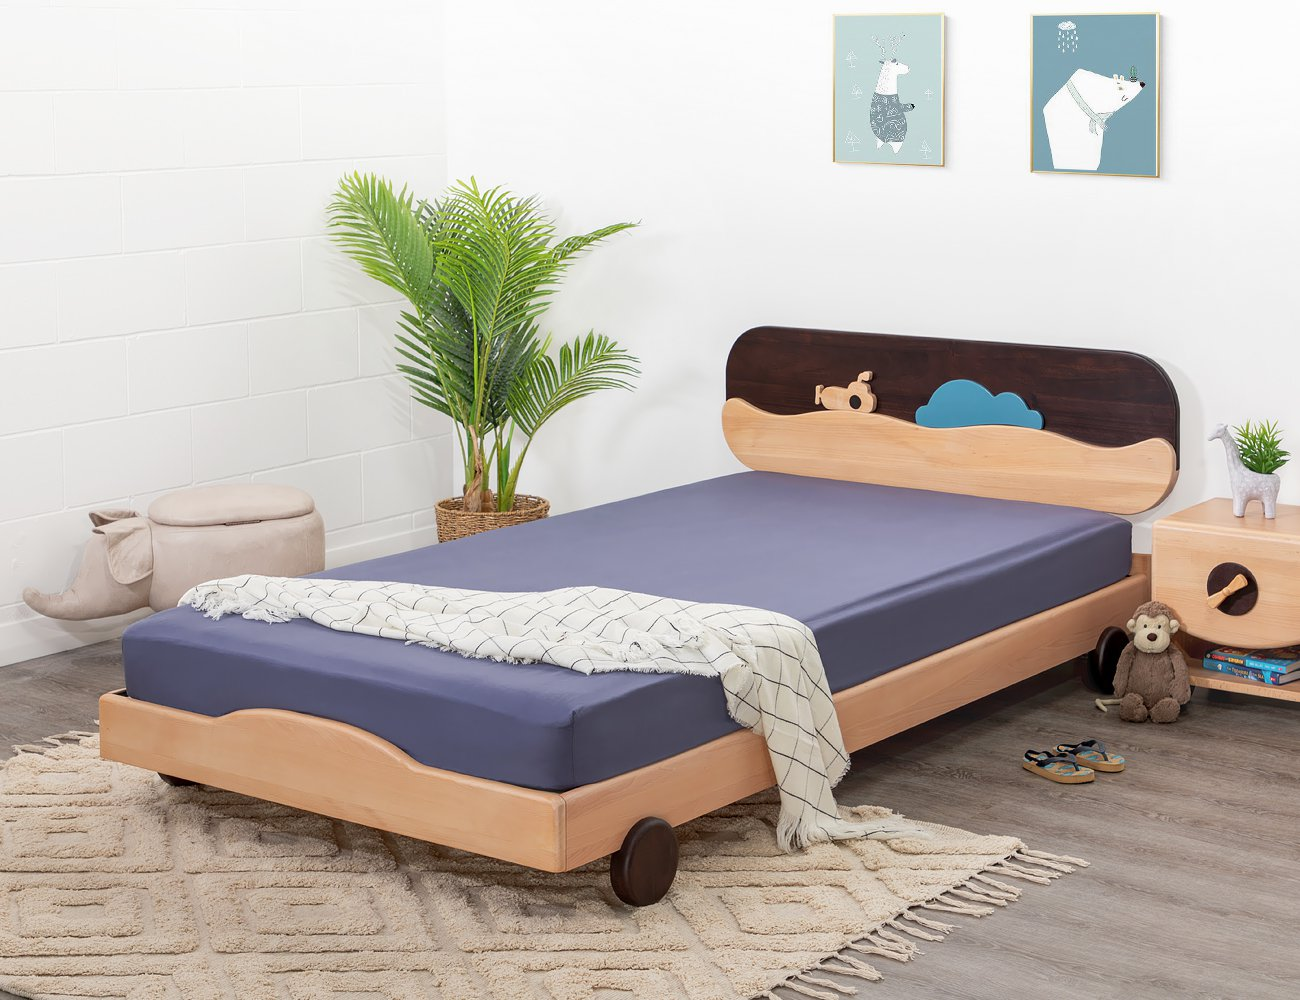 Submarine King Single Bed Frame